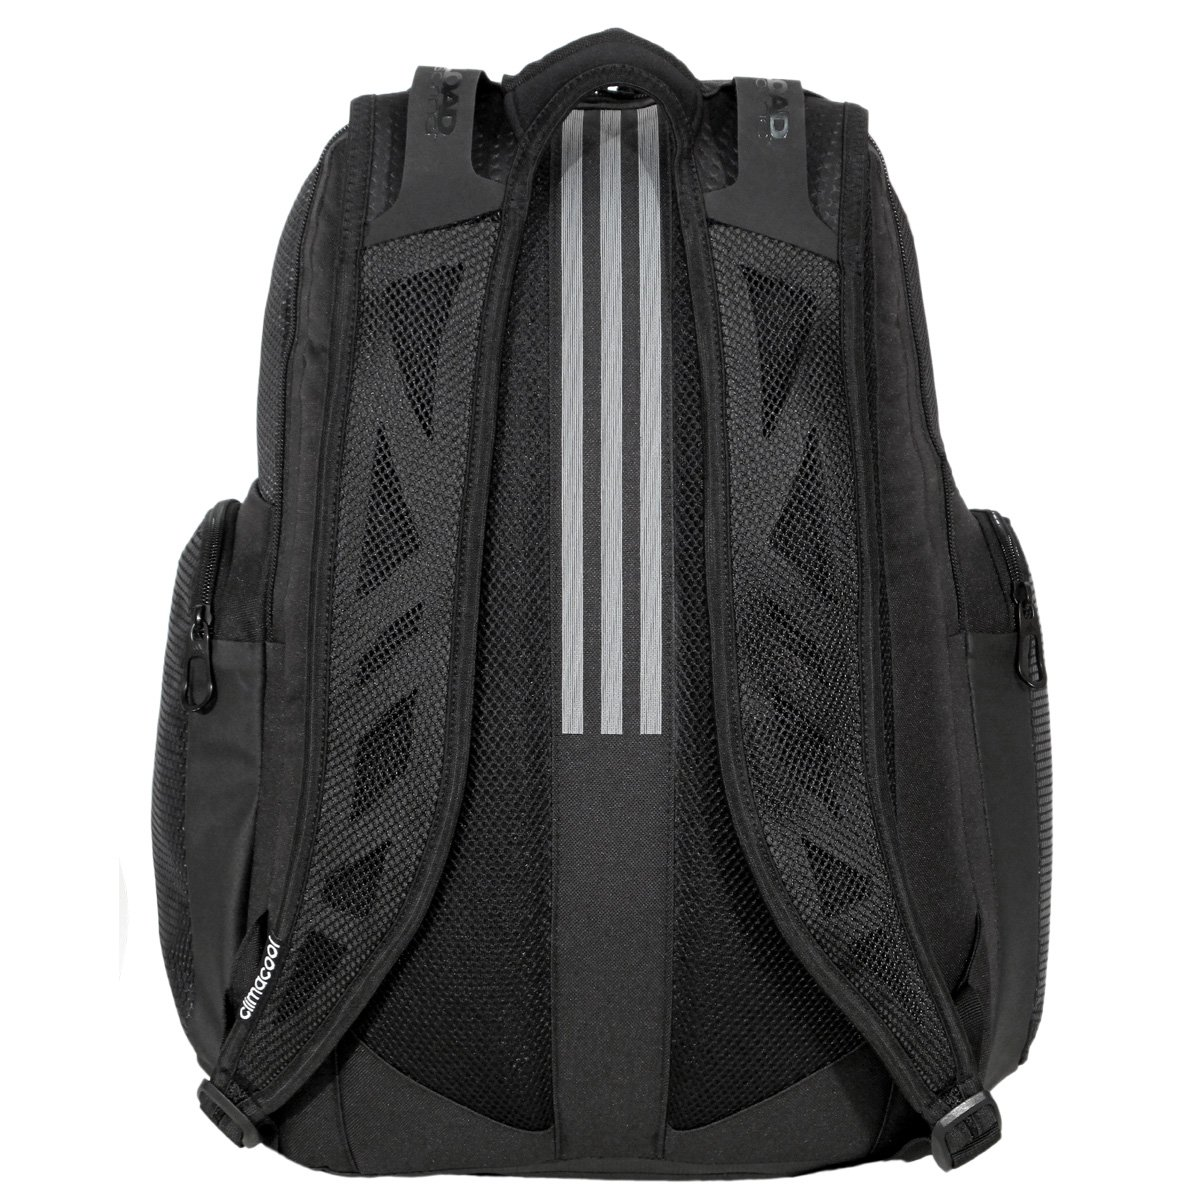 Strength Adidas Adidas Adidas Strength Adidas Backpack Adidas Strength Backpack Strength Backpack Backpack Adidas Backpack Strength SzpLGqMVU